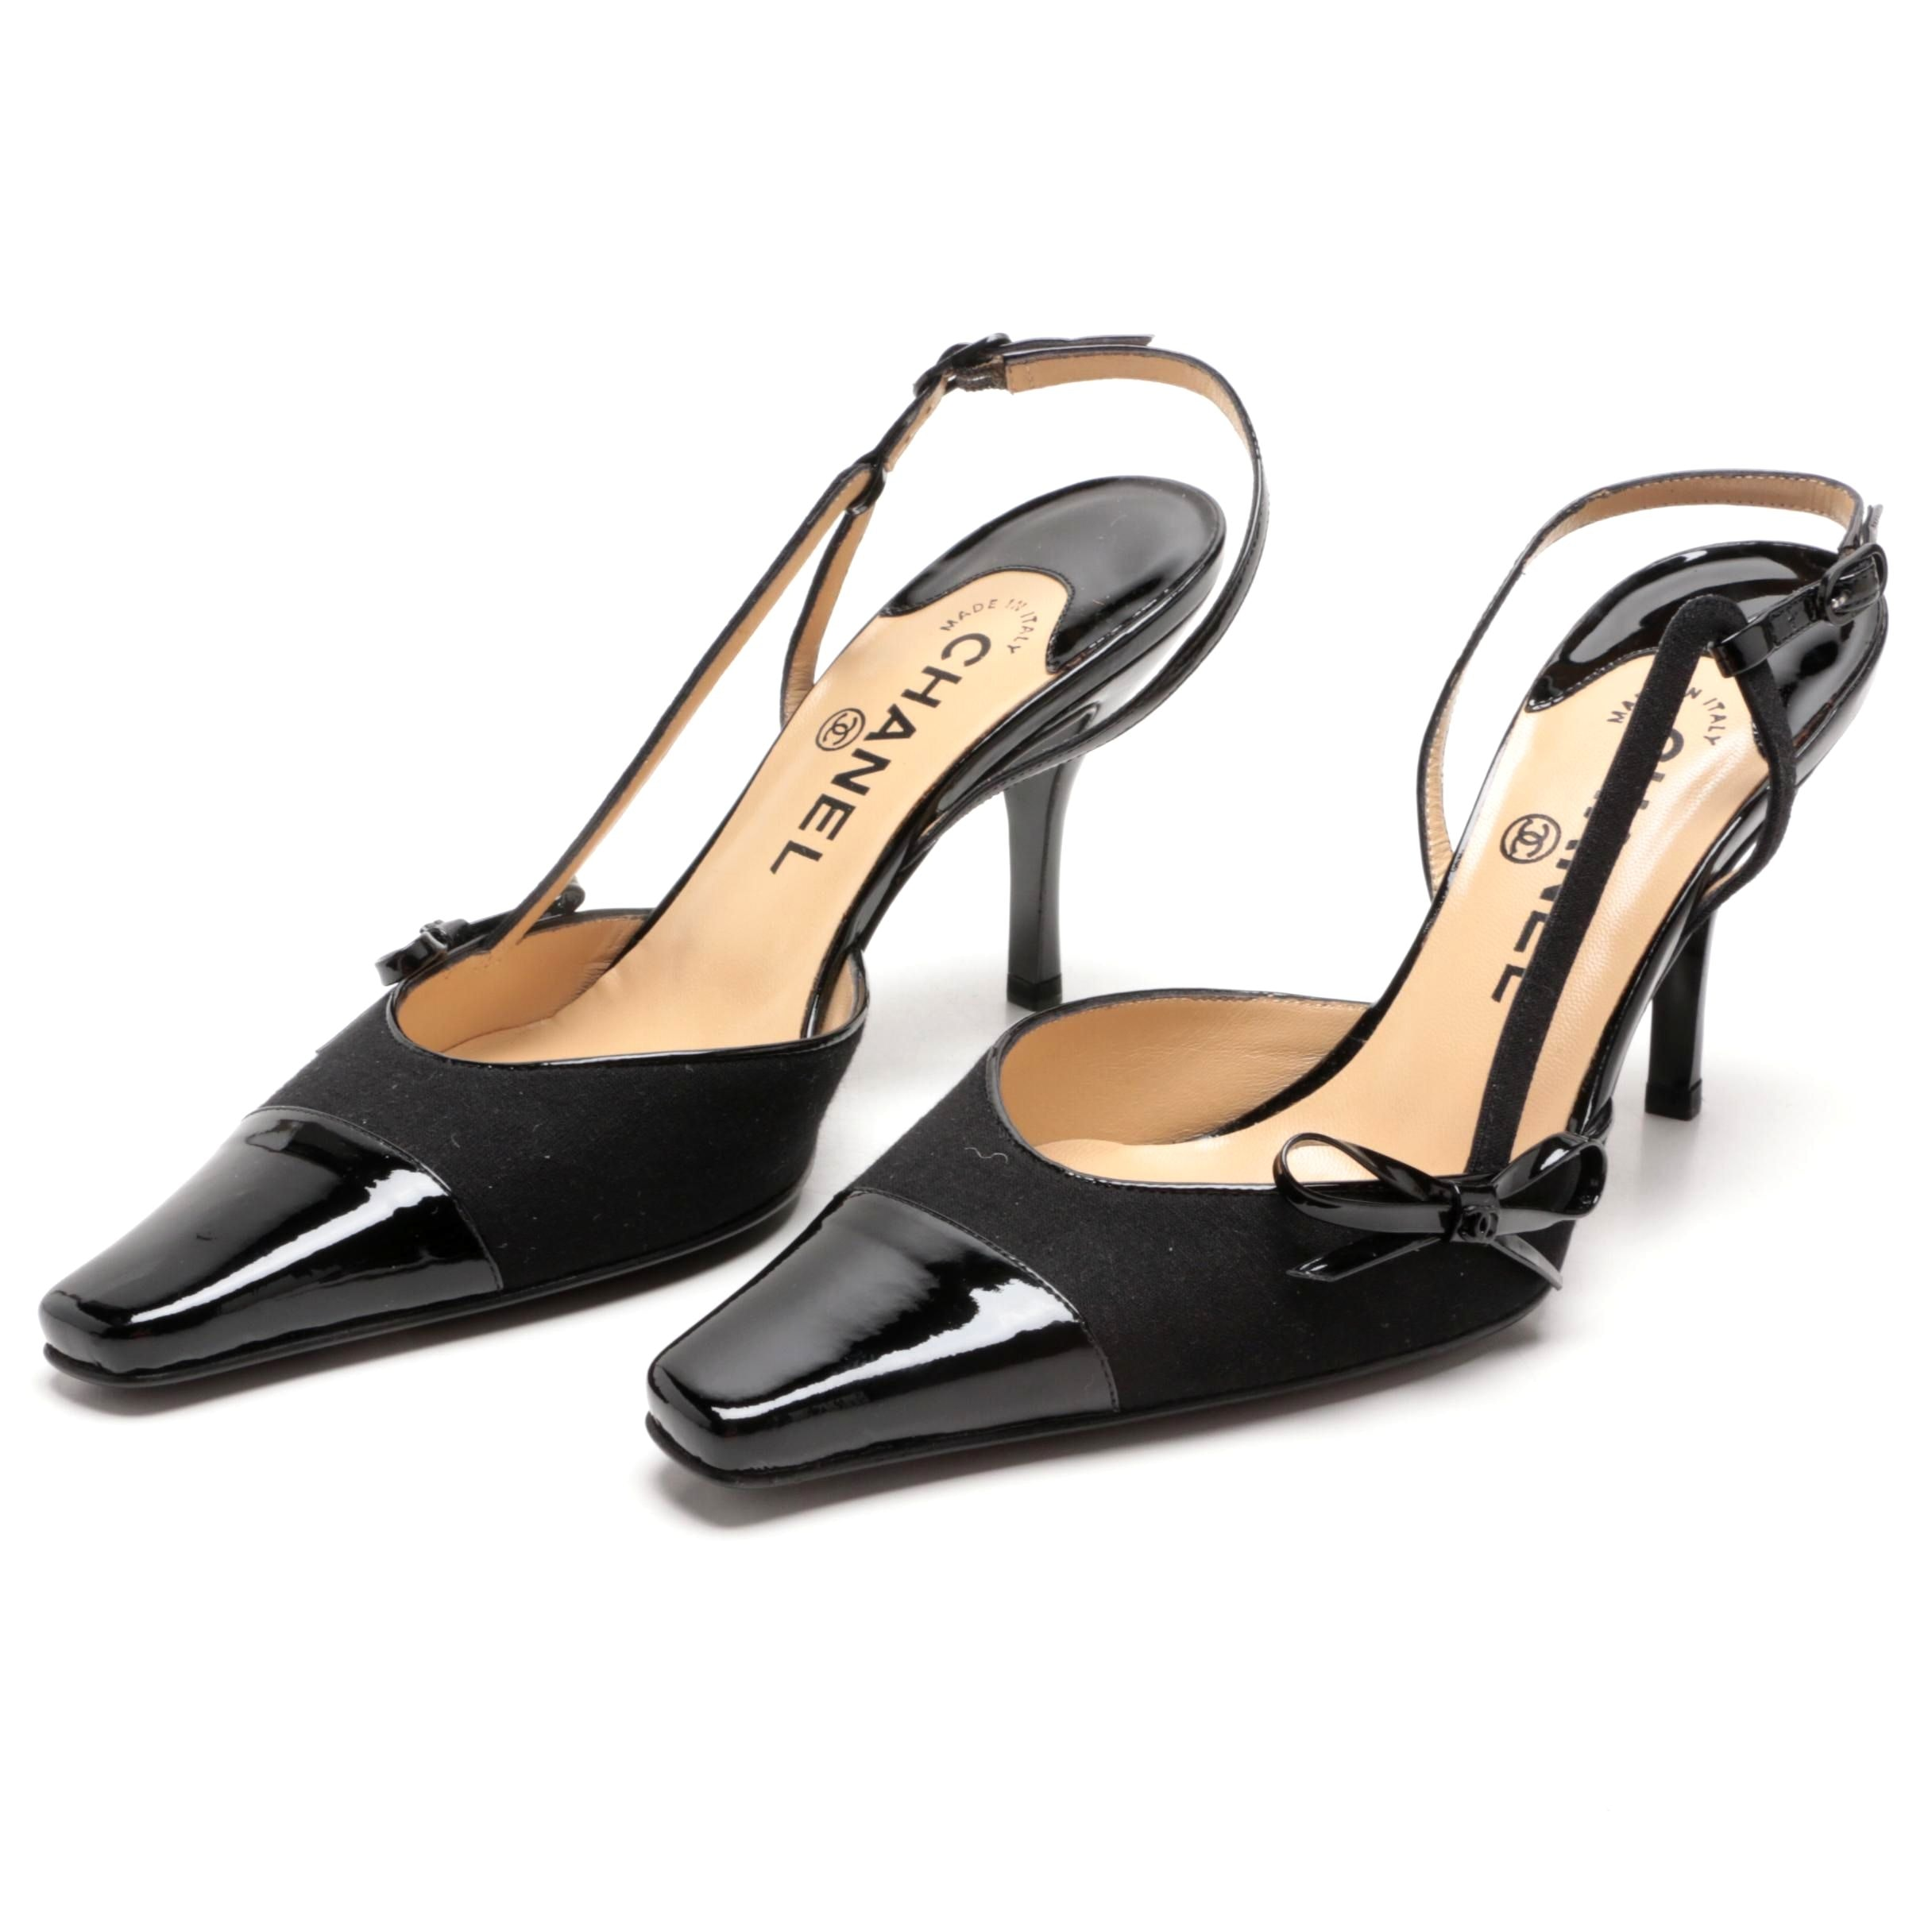 Chanel Black Twill and Patent Leather Slingback Heels with Bow